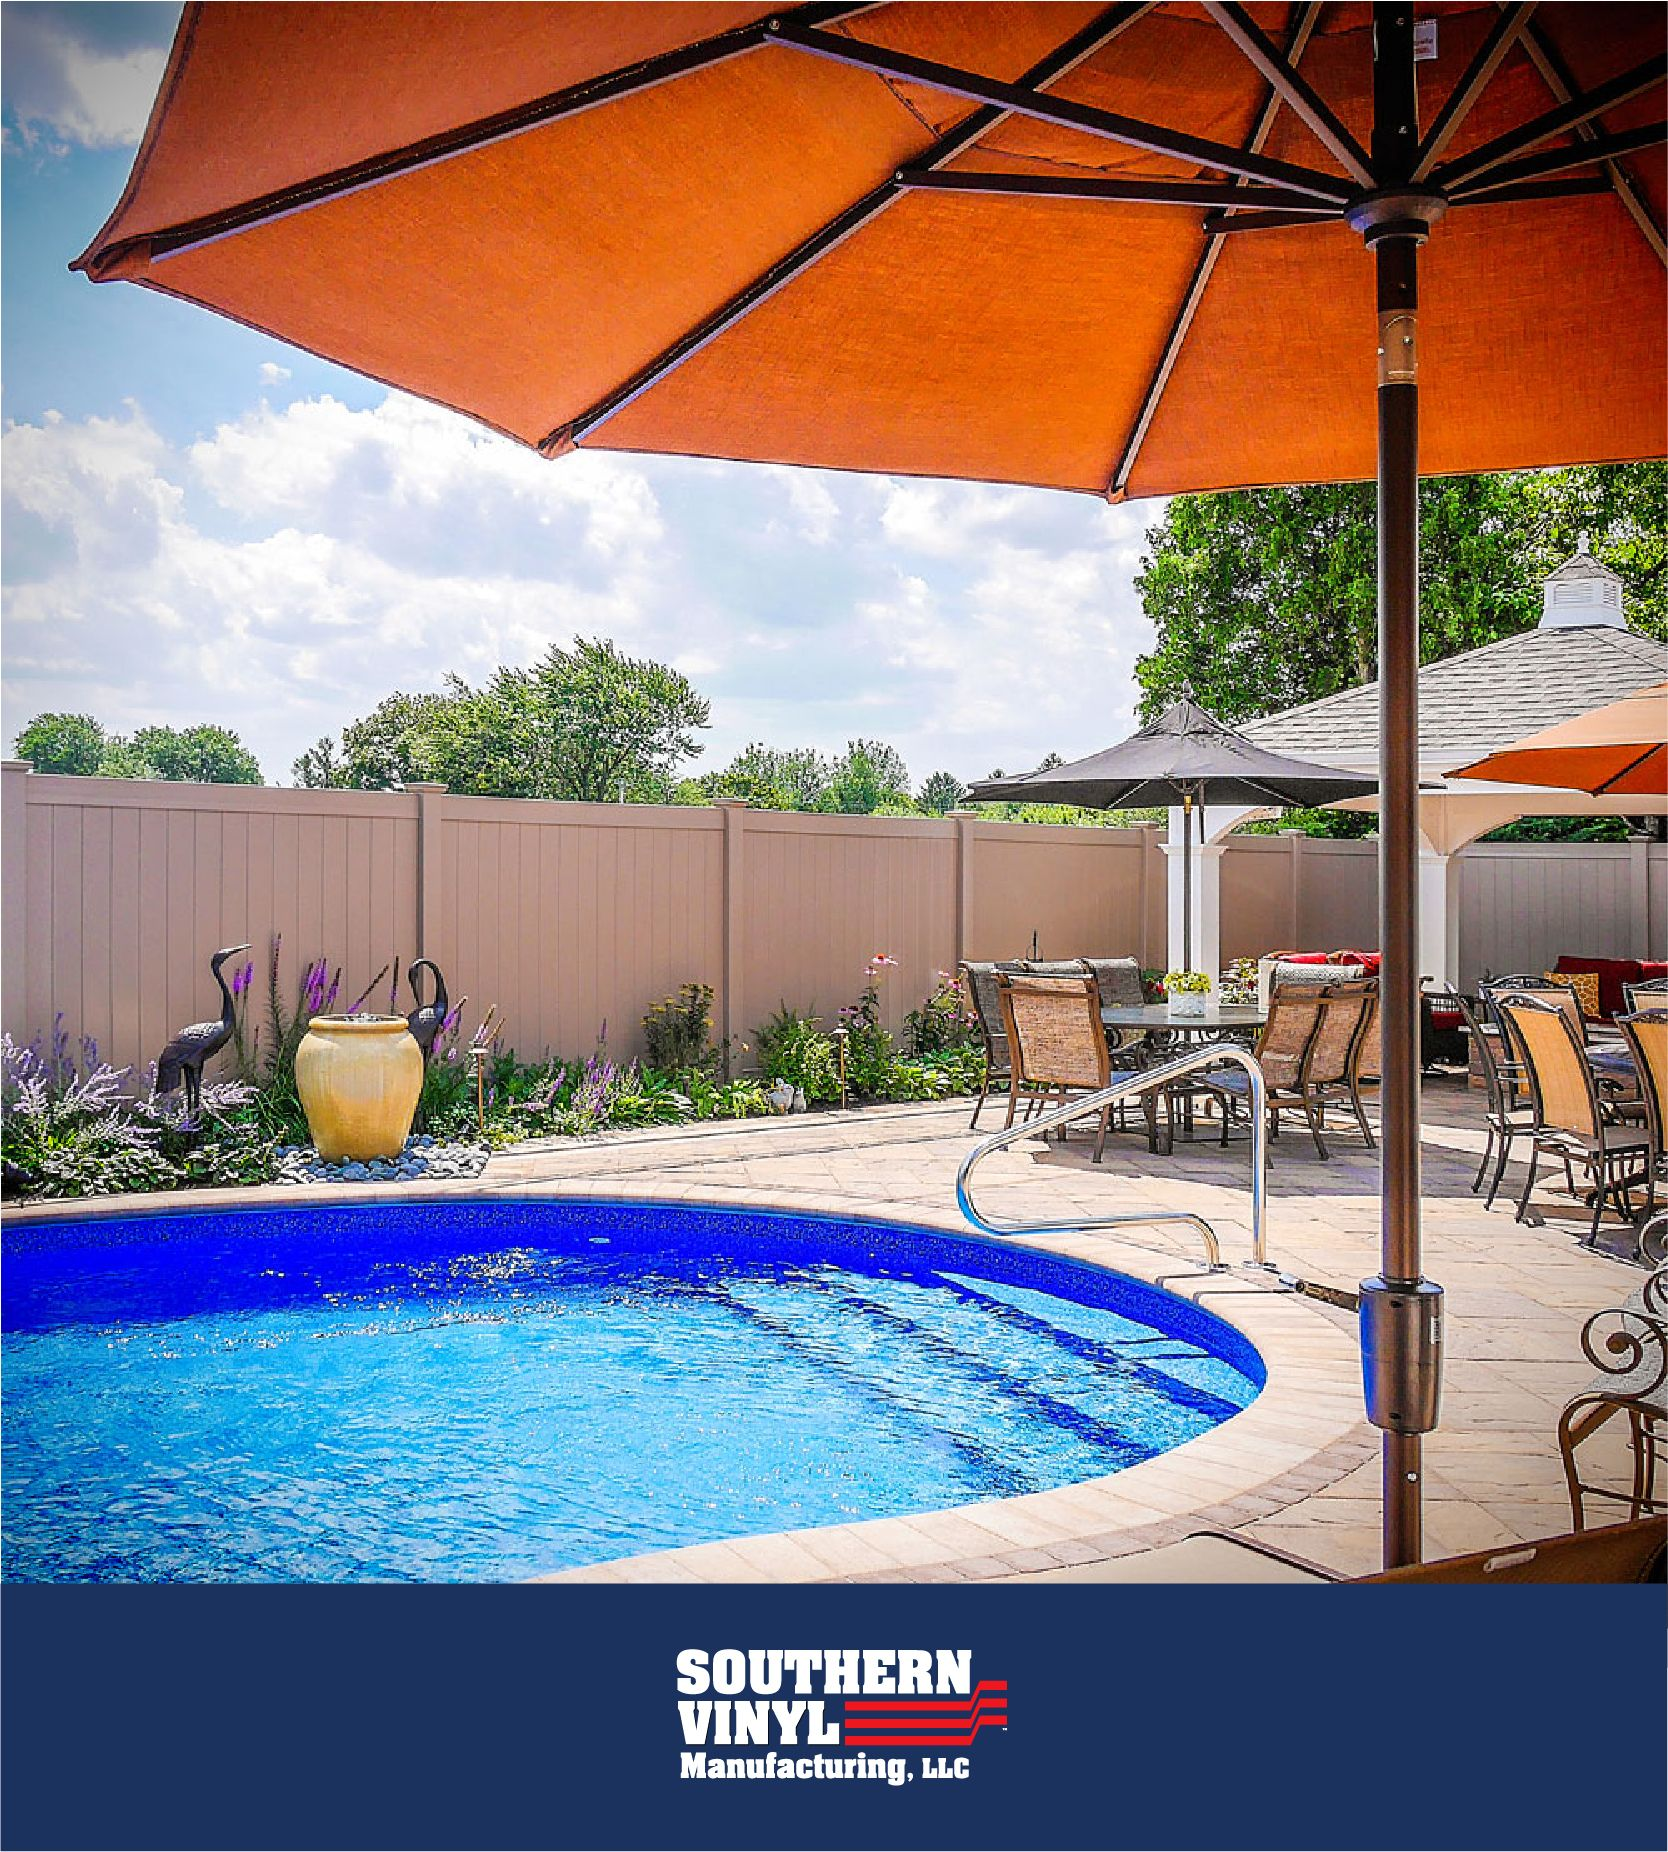 Bring Color To Your Plan With Paint Free Privacy Fences By Southern Vinyl Available In 30 Colors Vinyl Fence Backyard Fences Fence Design